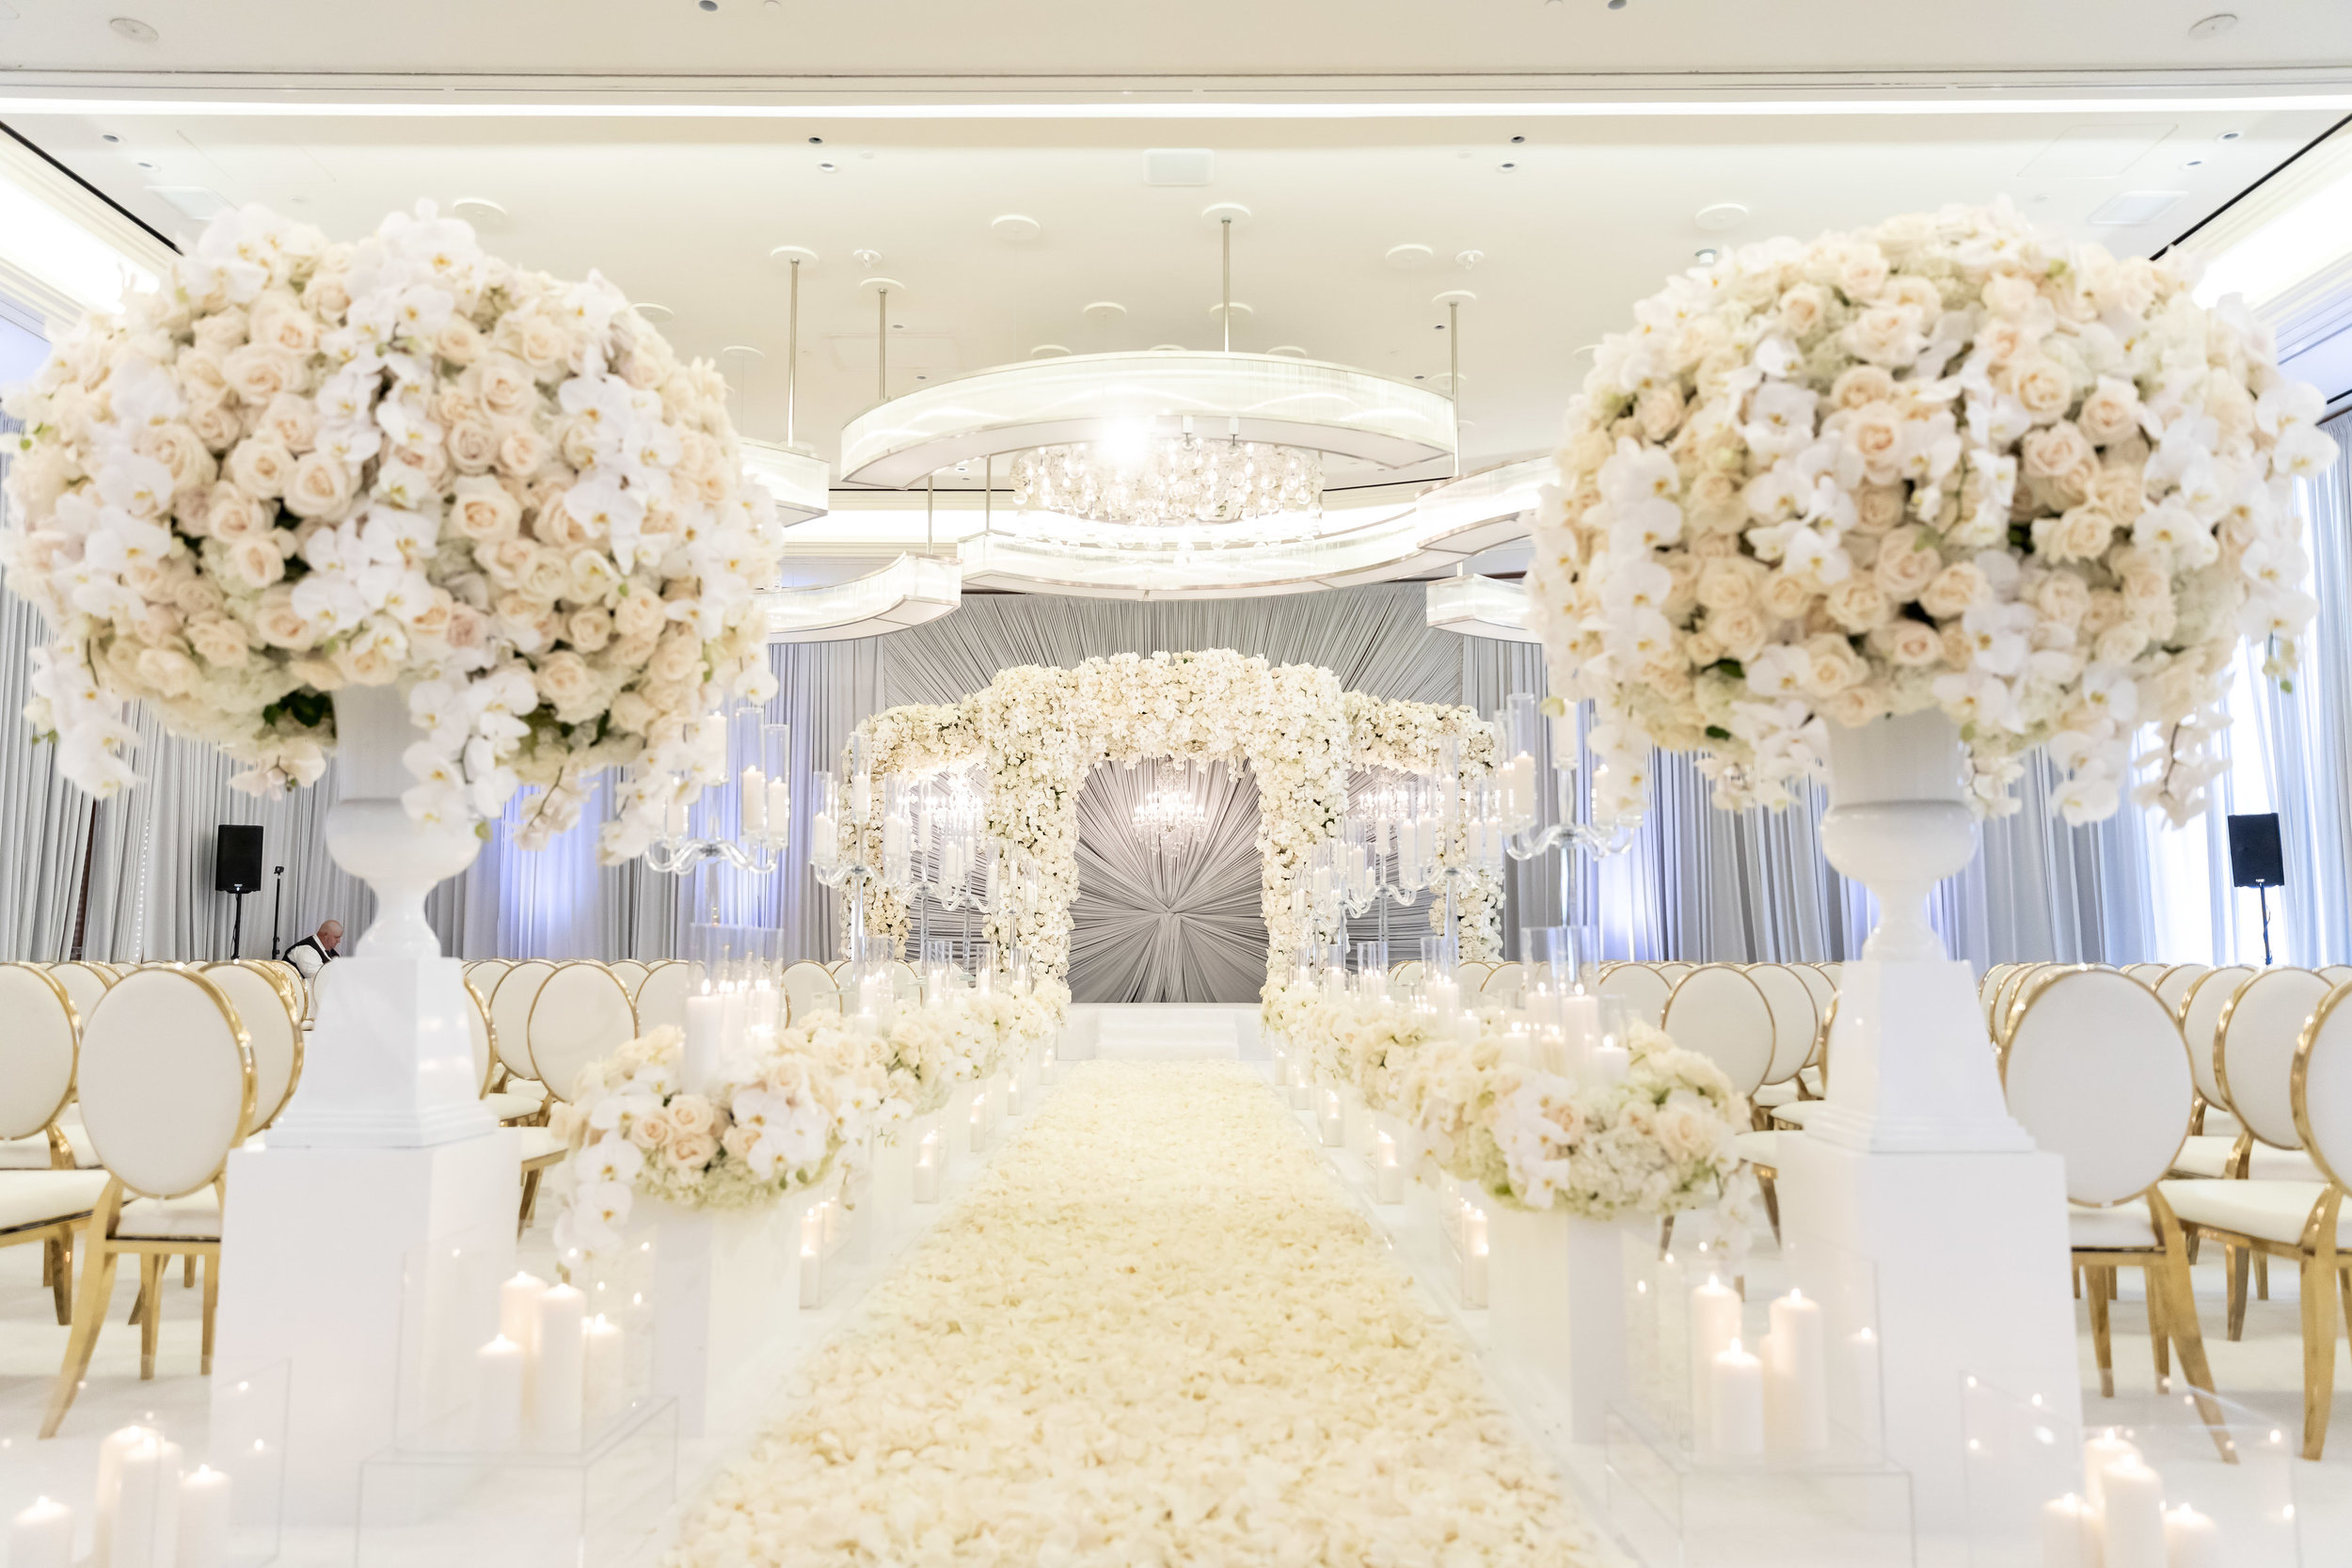 White and ivory ceremony decor at luxe Las Vegas wedding.  Designed and Produced by Las Vegas Wedding Planner Andrea Eppolito. Images by Brian Leahy.